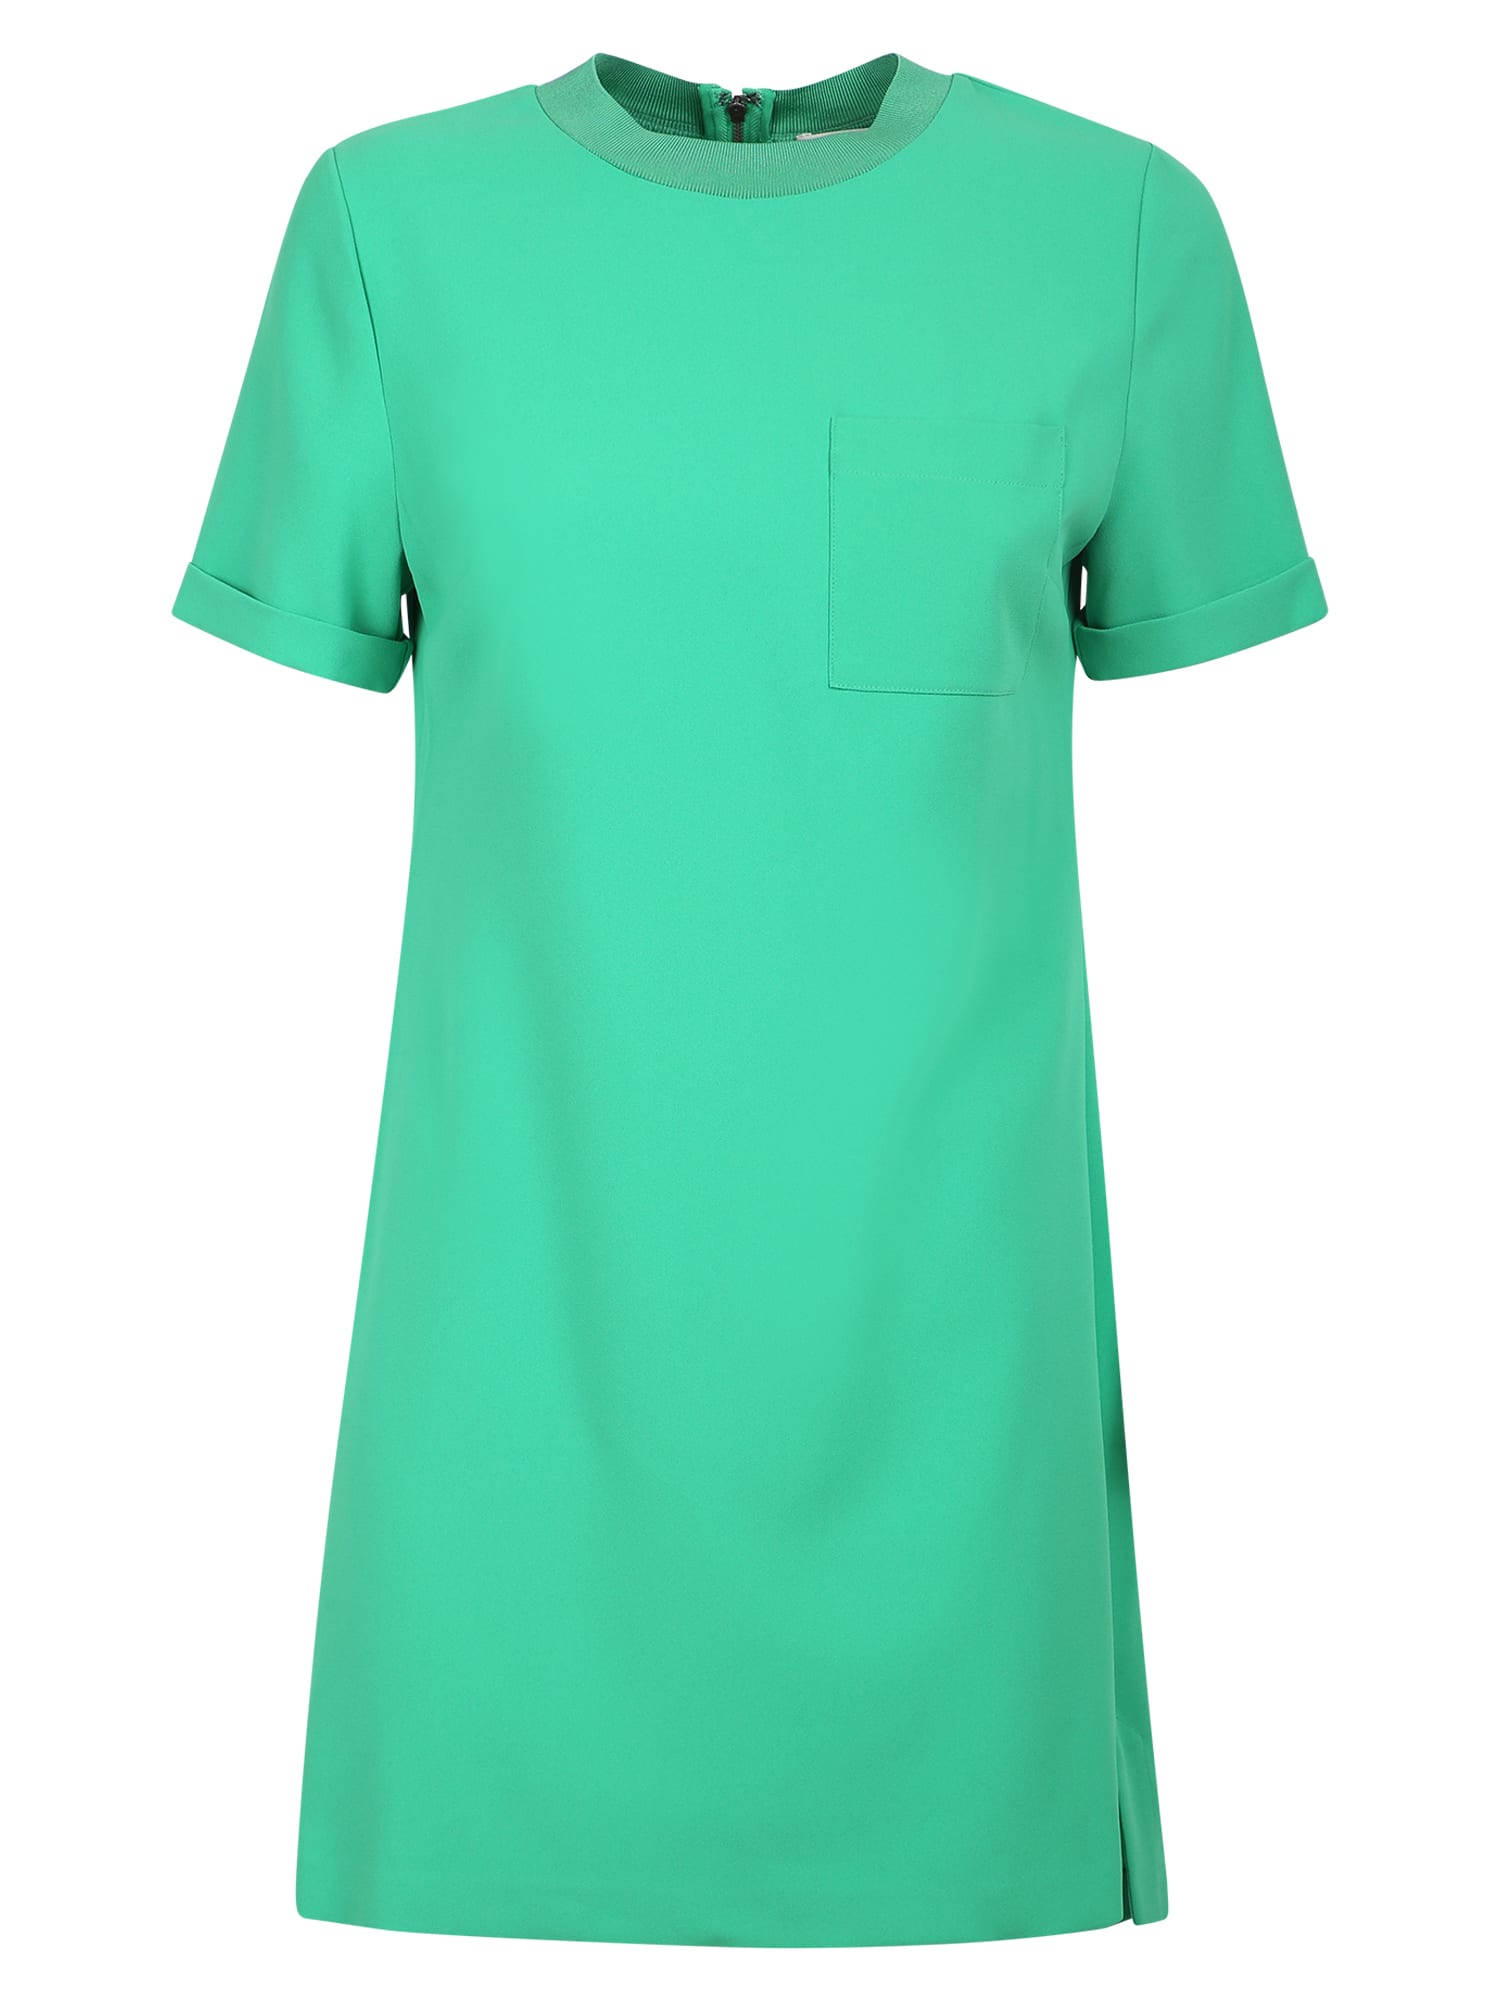 Alice + Olivia T-shirt Dress